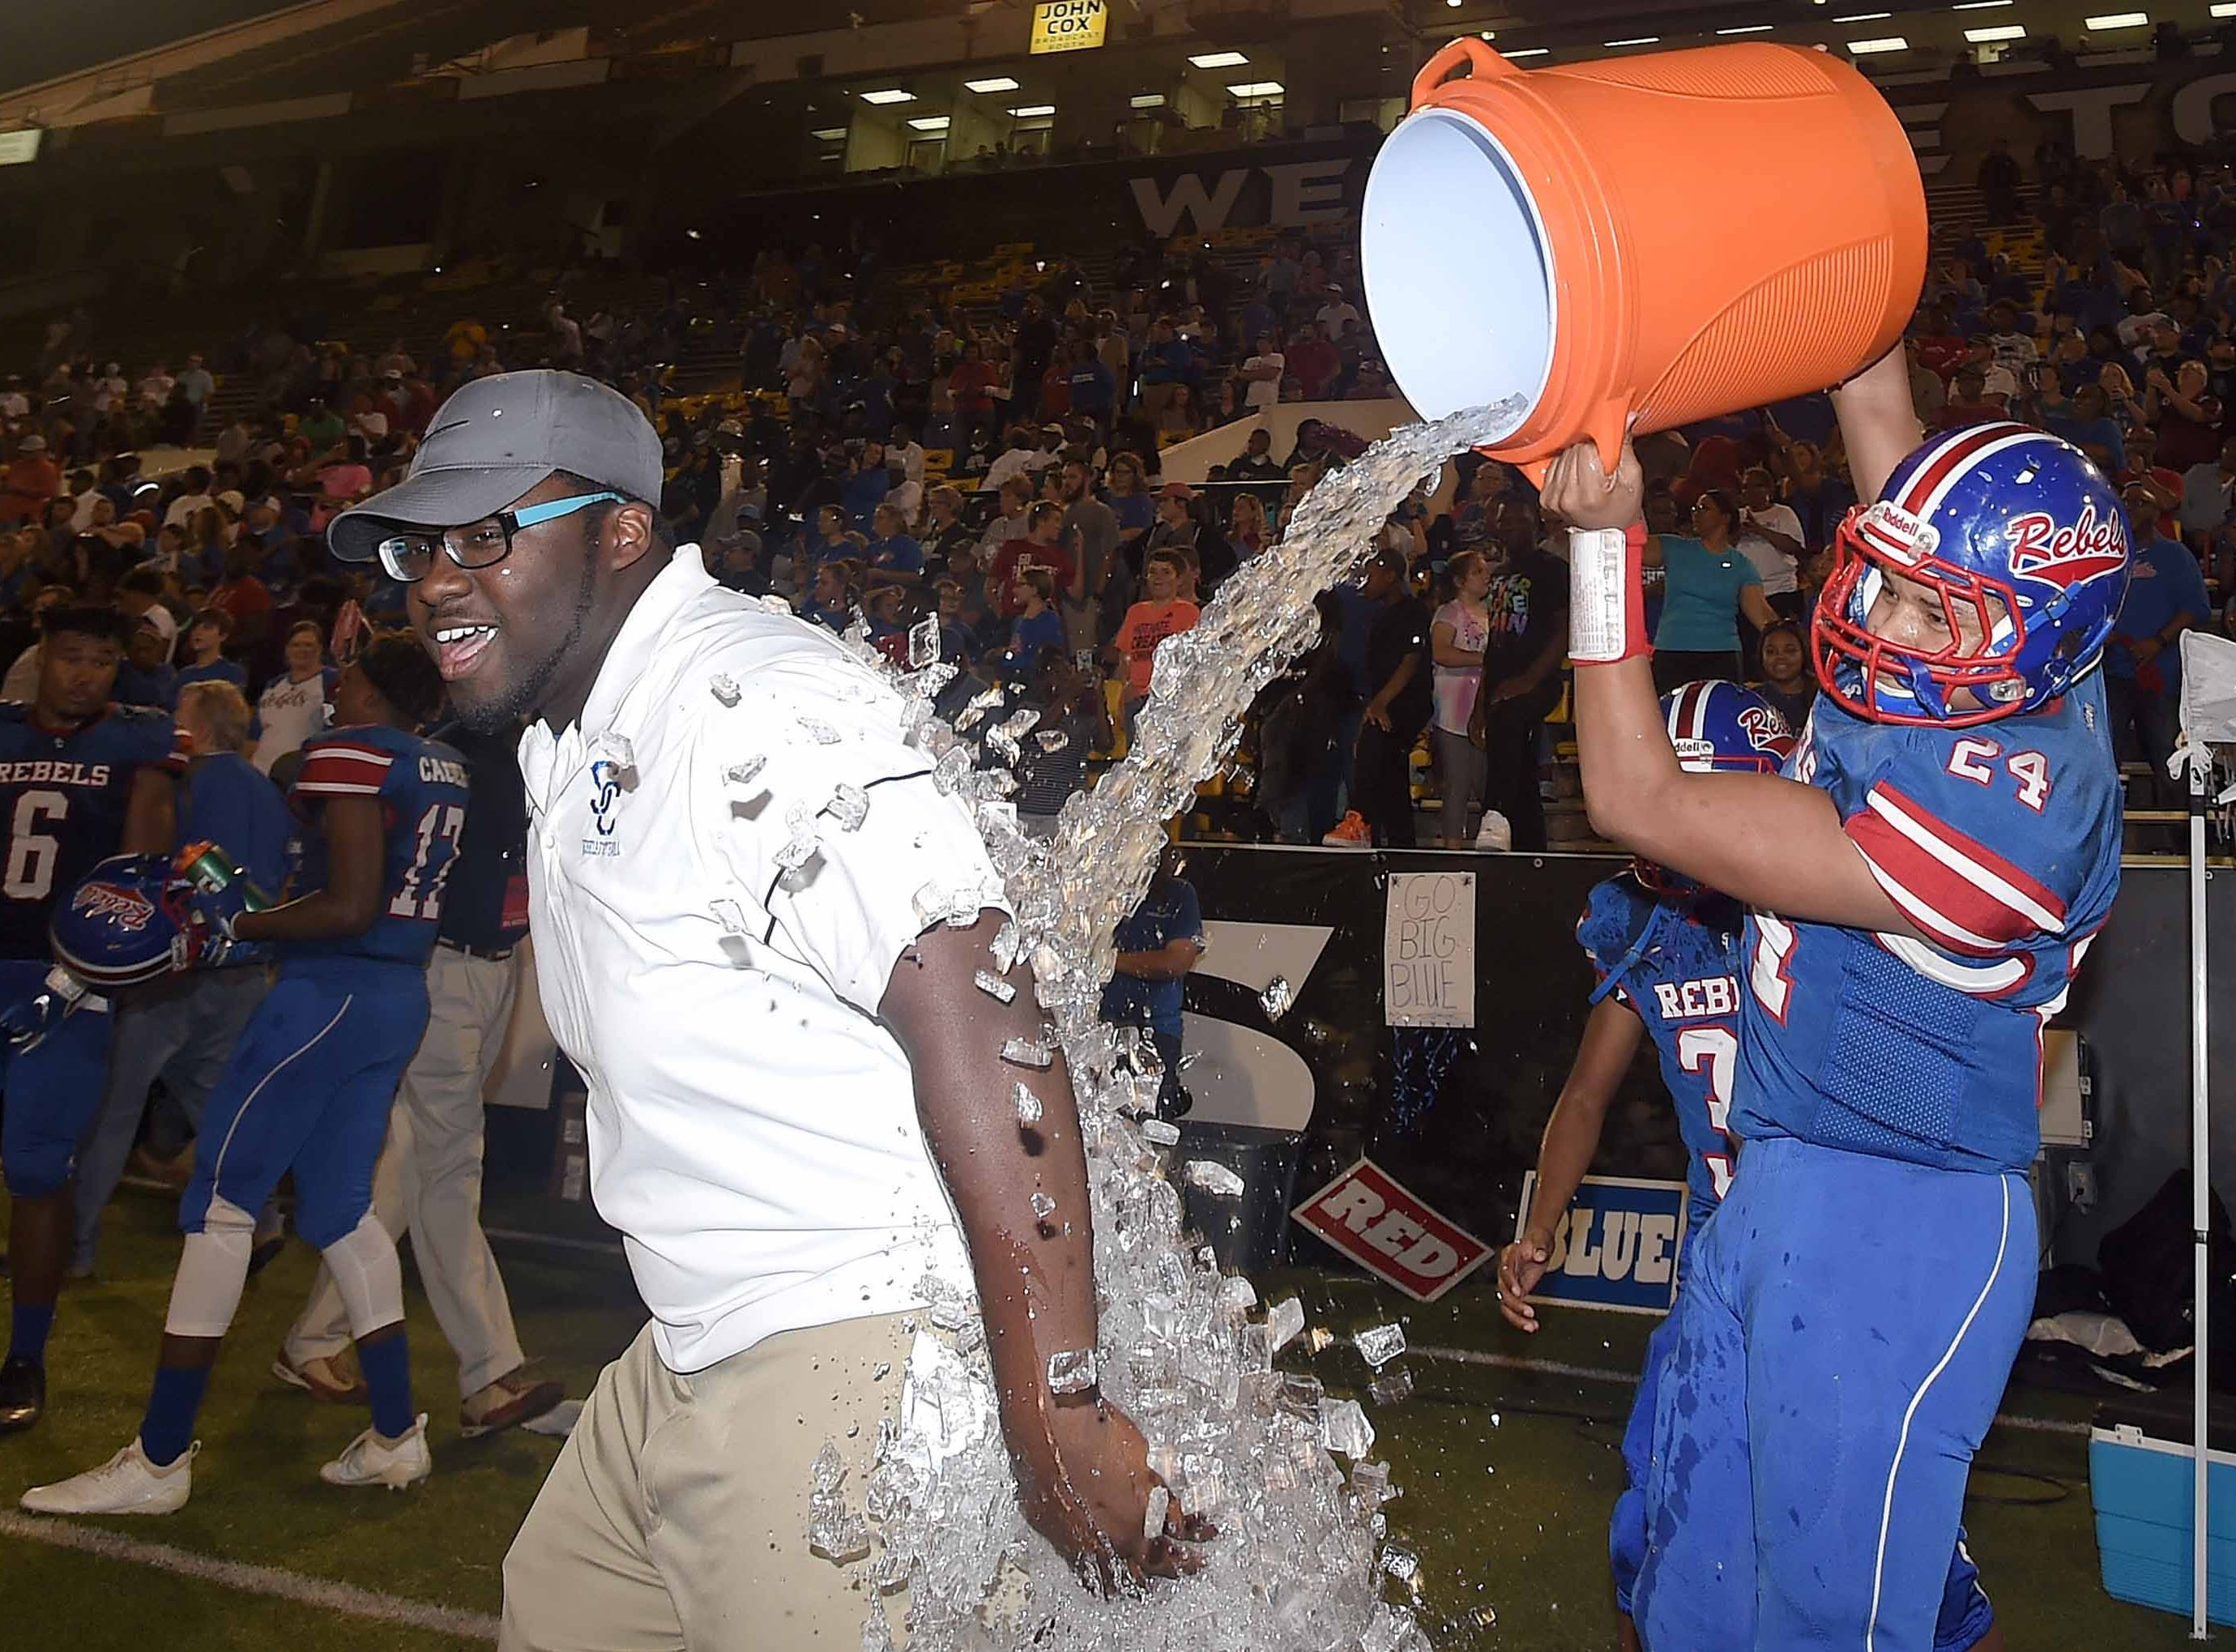 Scott Central's Zechariah Parodi (24) give a coach an ice water bath on Saturday, December 1, 2018, in the MHSAA BlueCross BlueShield Gridiron Classic High School Football Championships in M.M. Roberts Stadium on the University of Southern Mississippi campus in Hattiesburg, Miss.